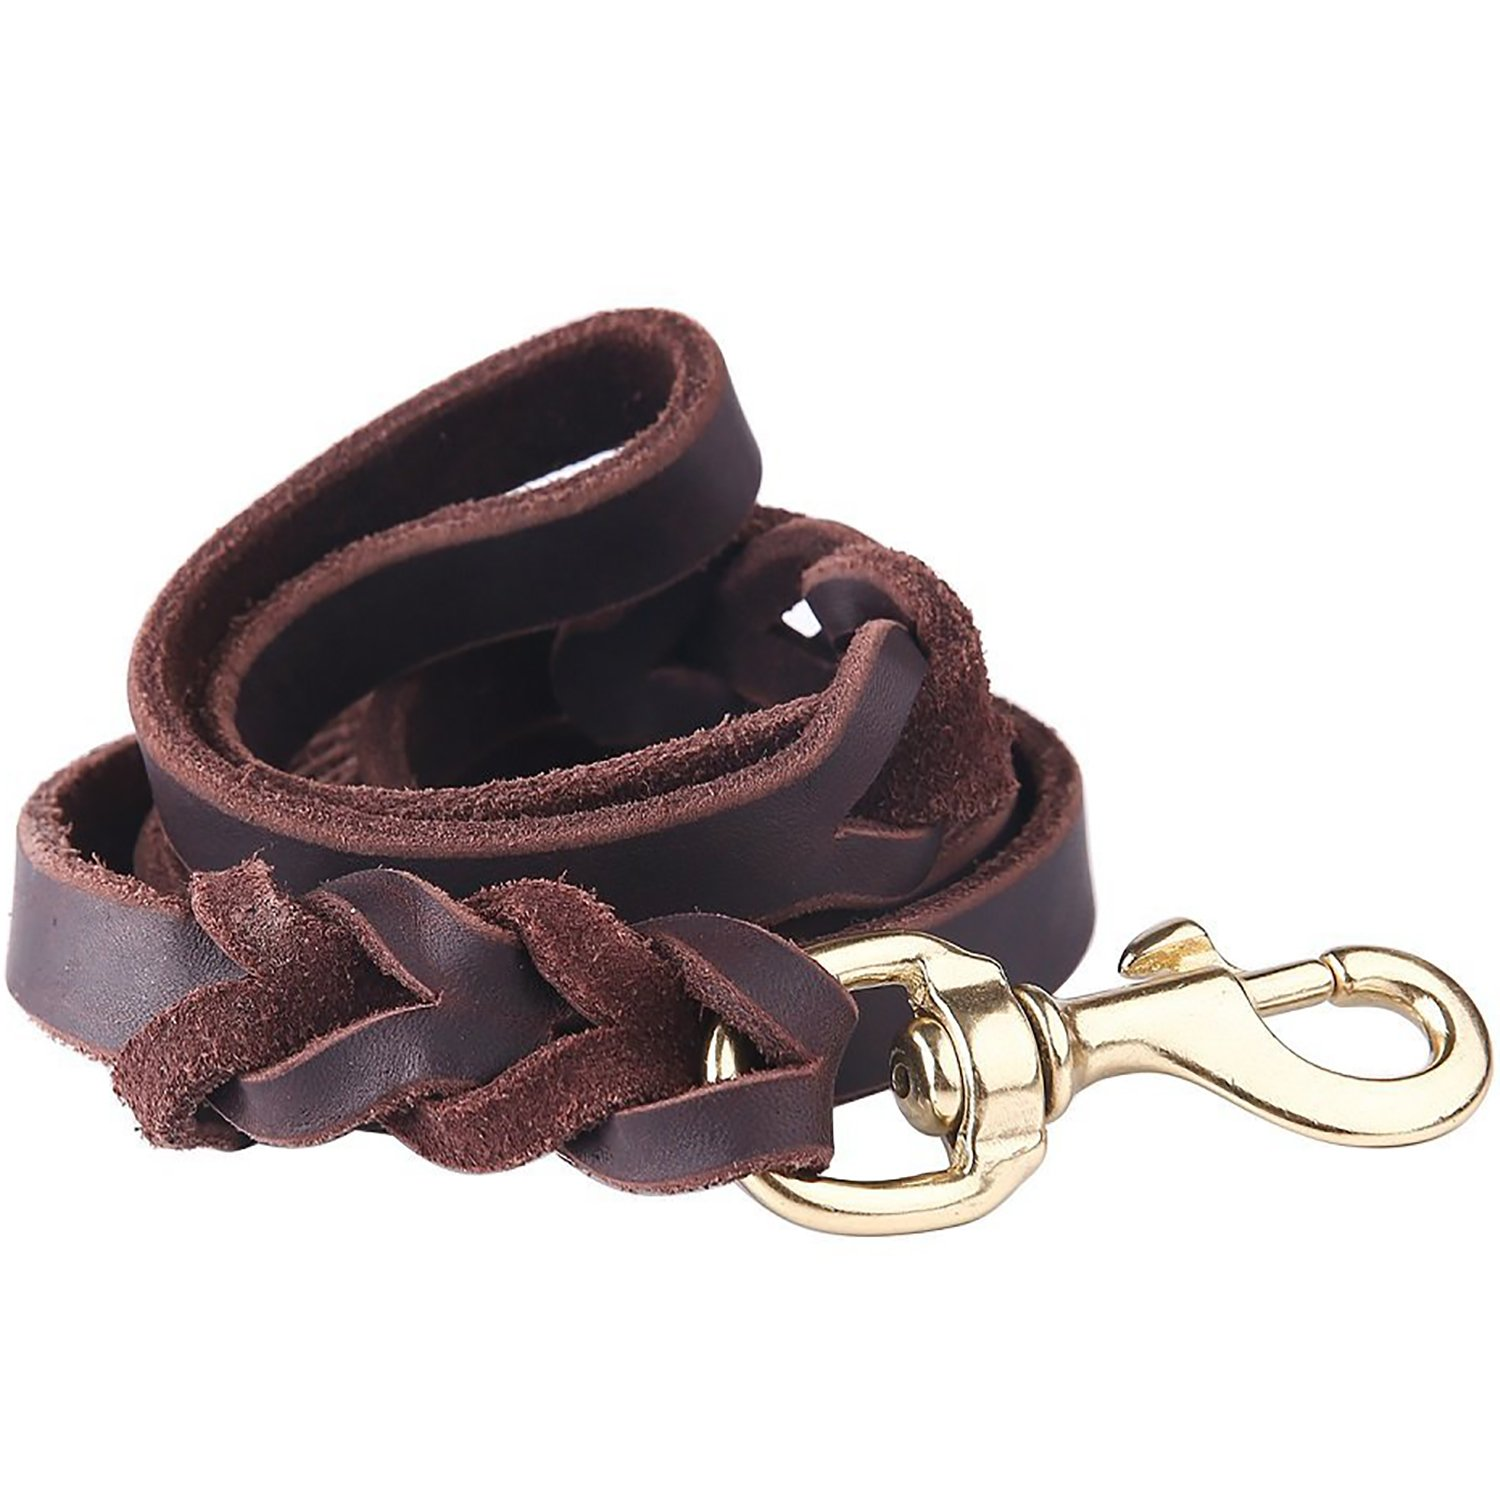 Taglory Premium Leather Dog Leash 6 Foot x 5/8 Inch/Braided Latigo Leather K9 Training Leads/Best Trainer Leashes for Medium and Large Dogs/Brown by Taglory